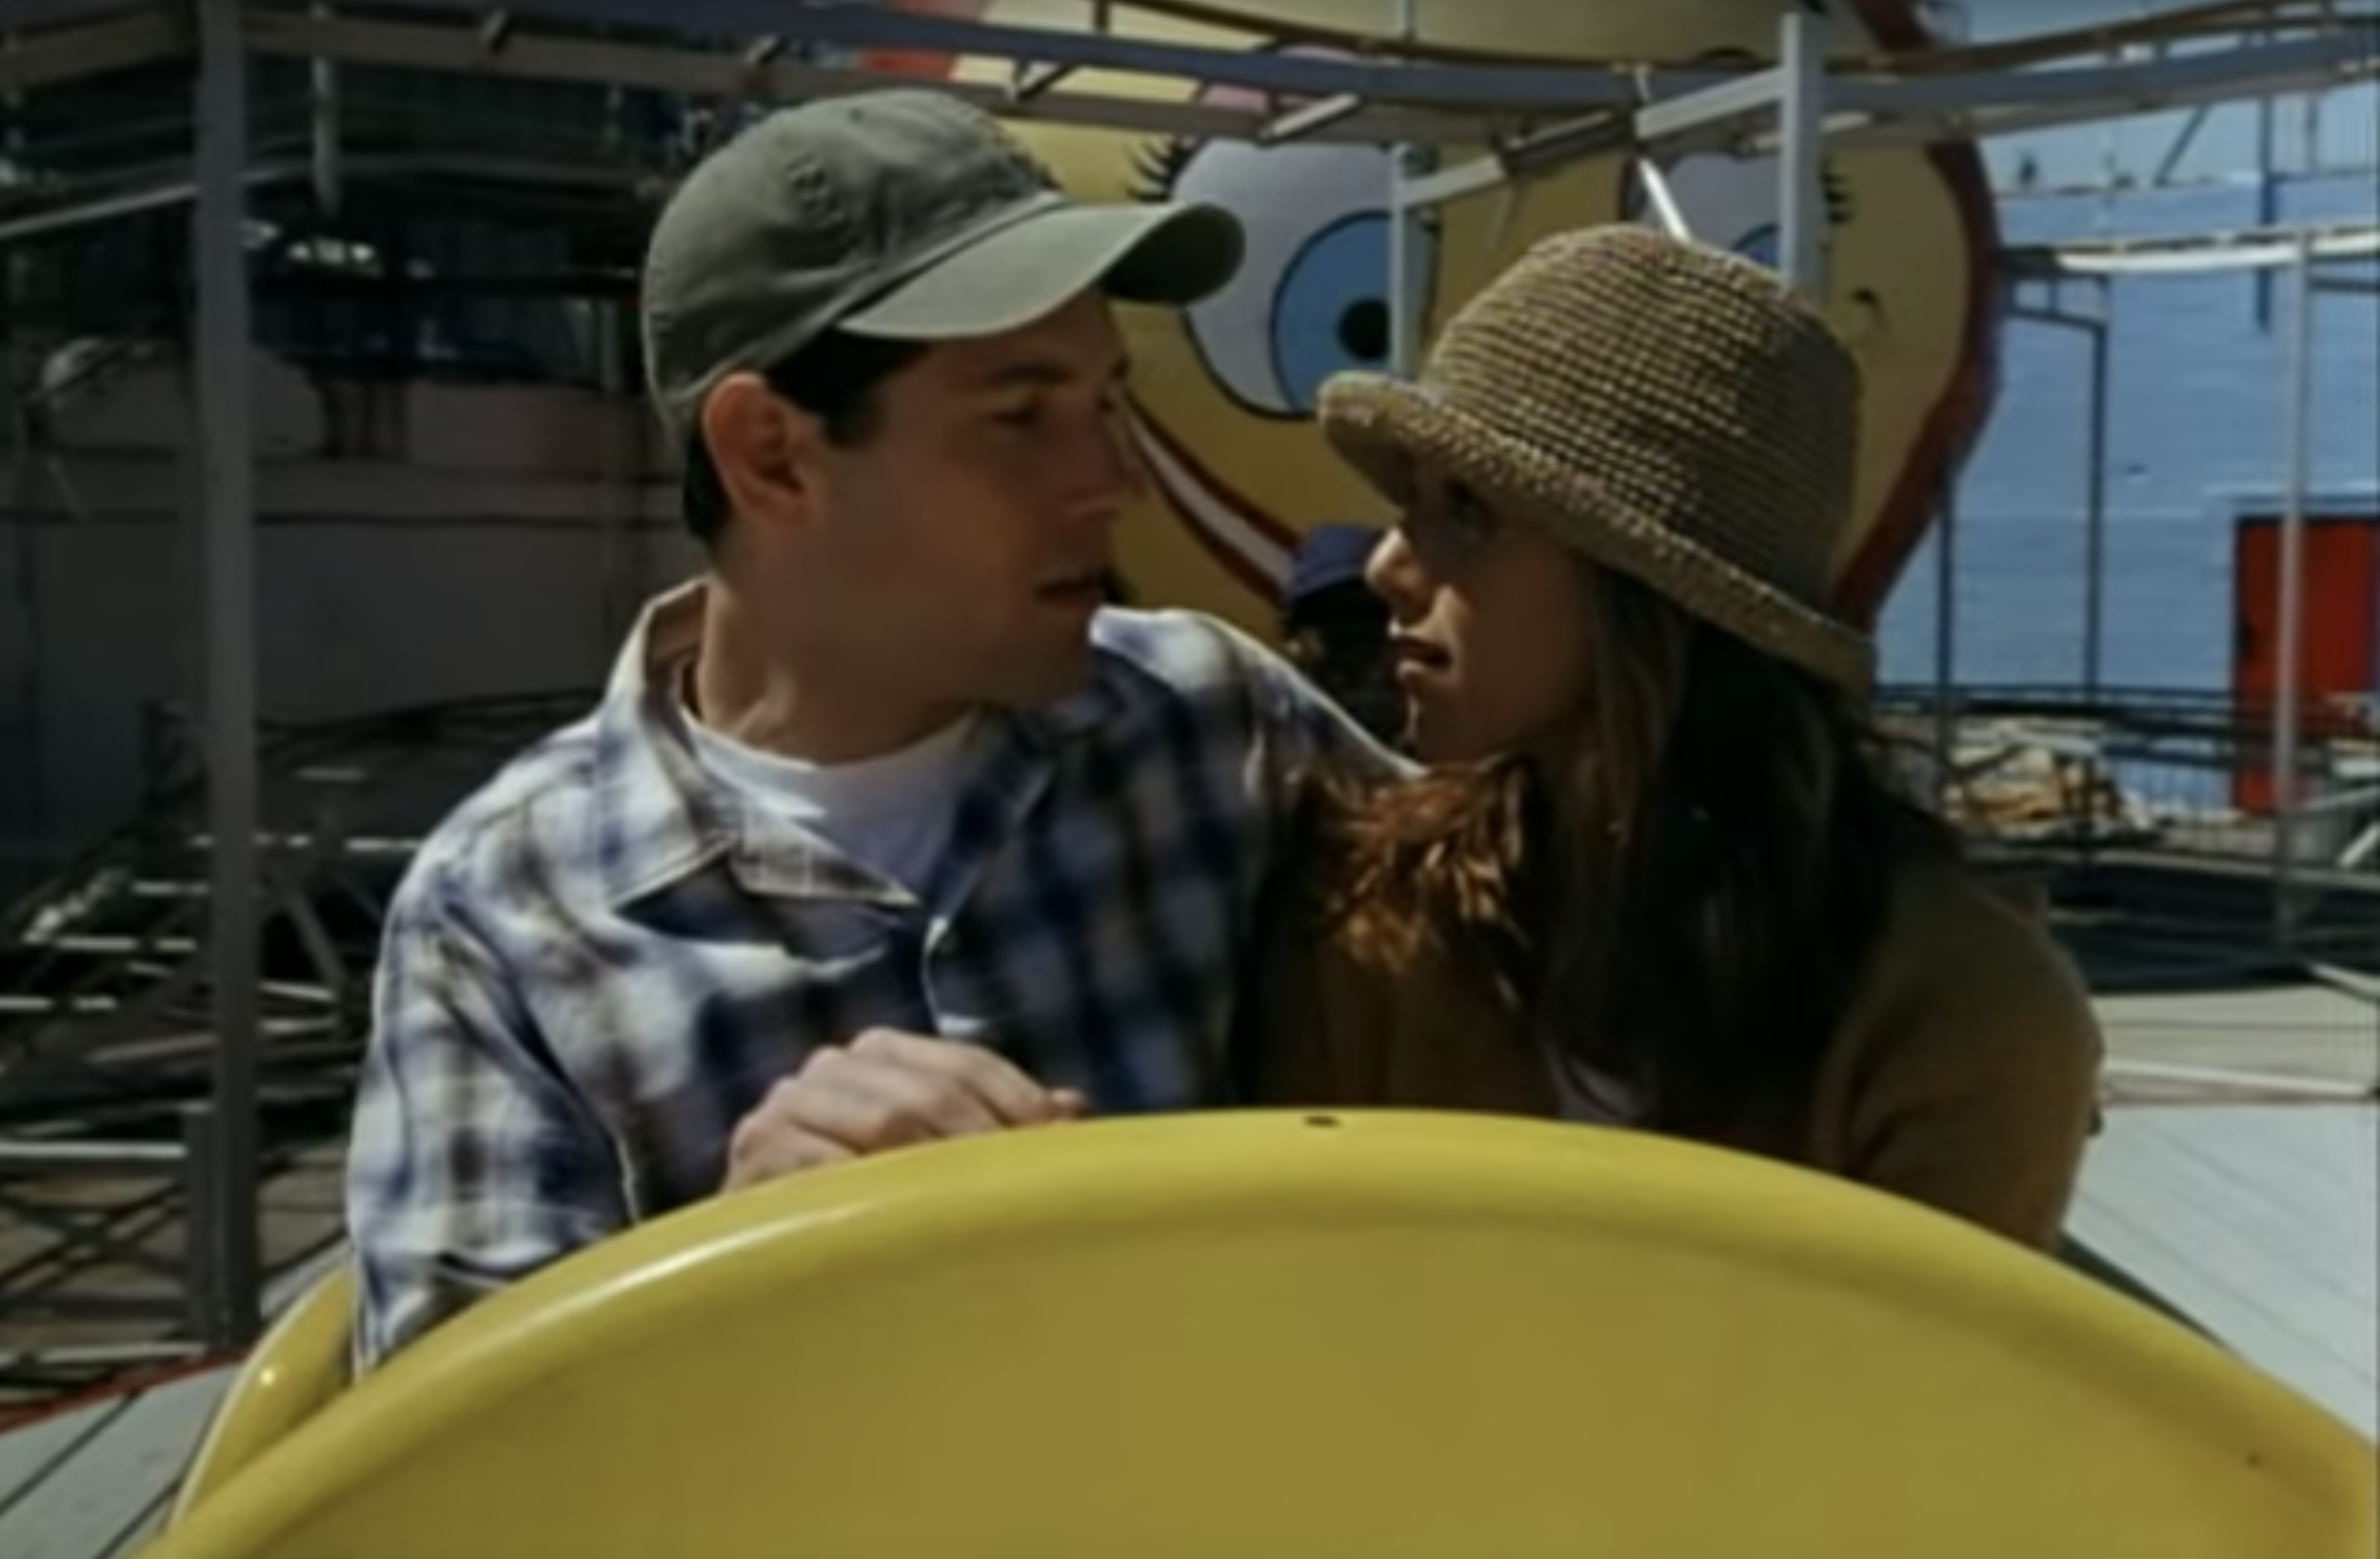 Nina and George on some ill-advised amusement park ride no ob-gyn would approve.